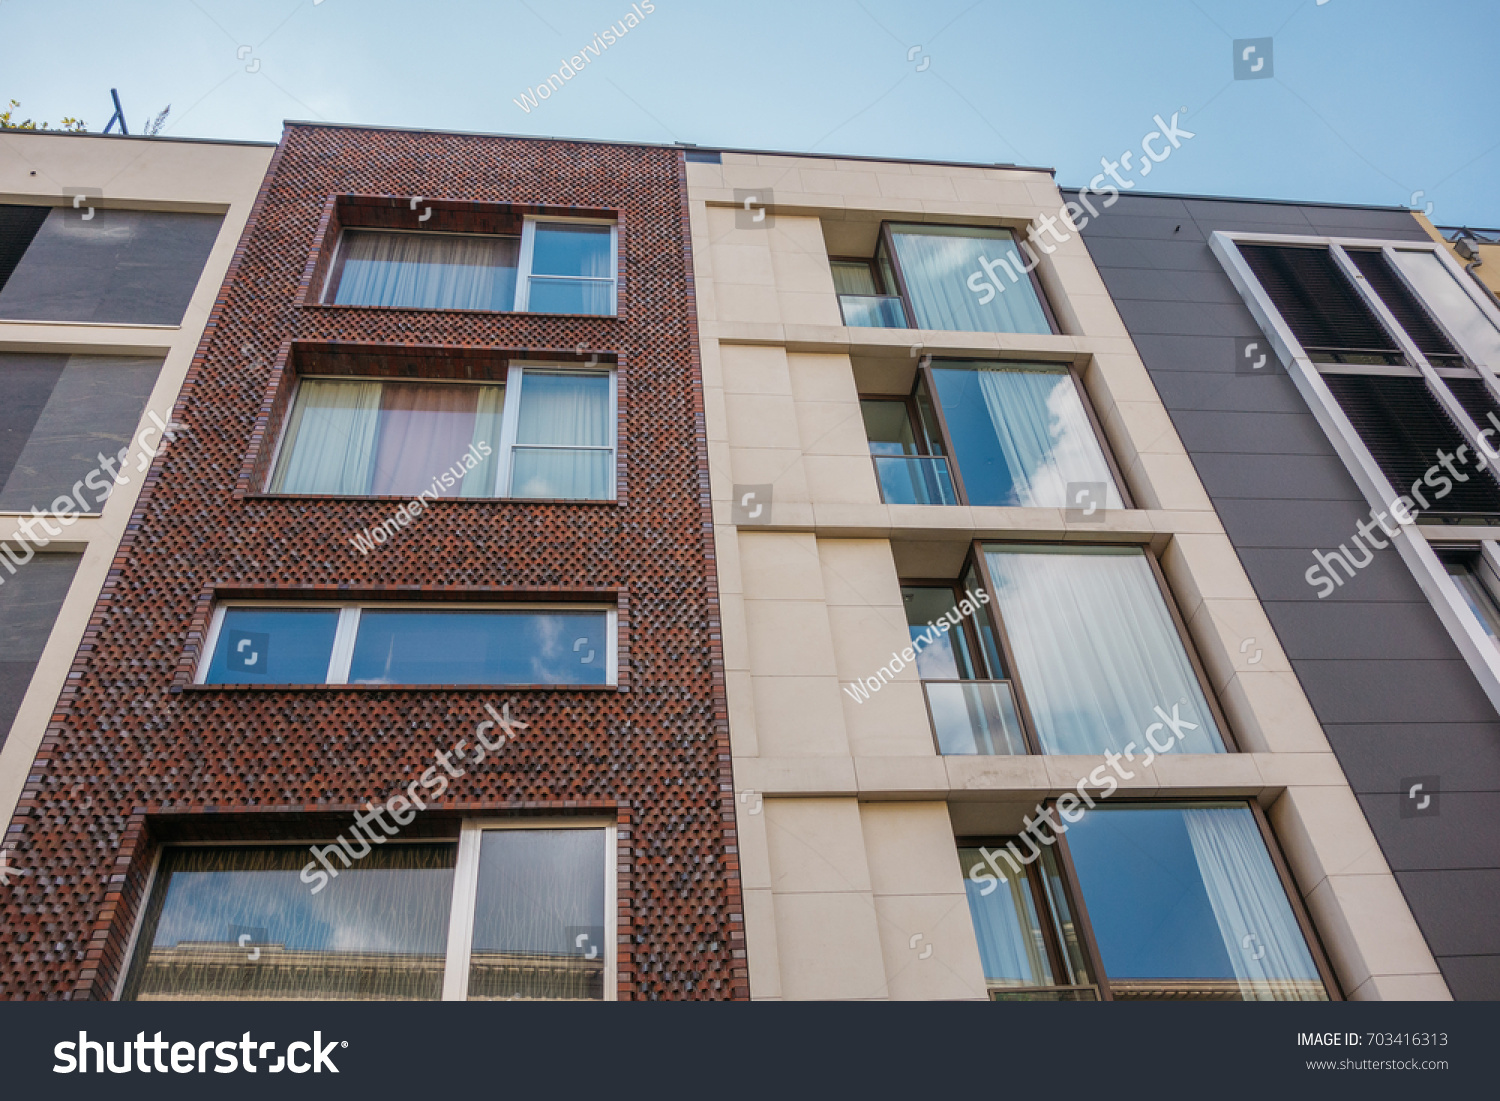 big glass windows small id 703416313 brown brick facade next to white and grey townhouse building with